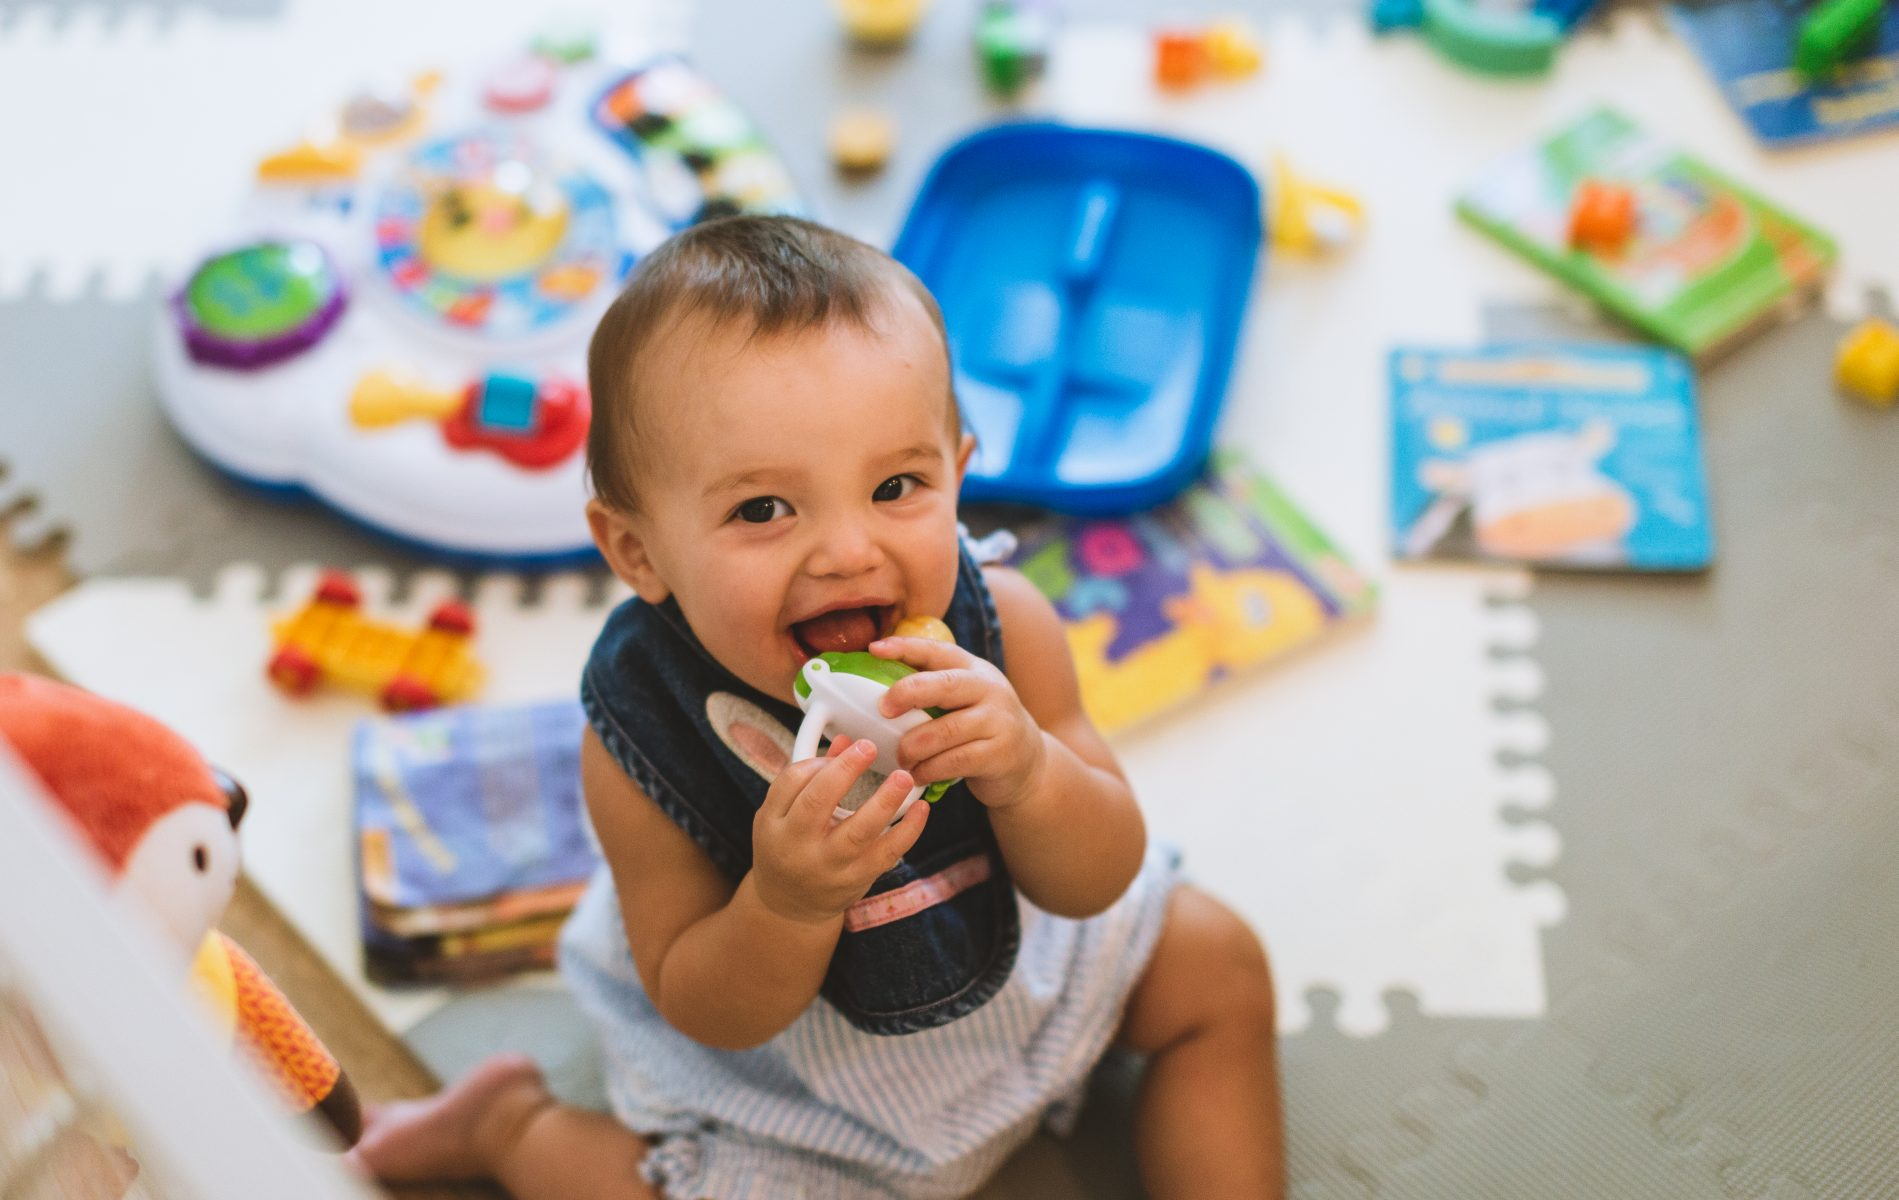 Here's My Strategy for Traveling With Homemade Food for My Older Baby